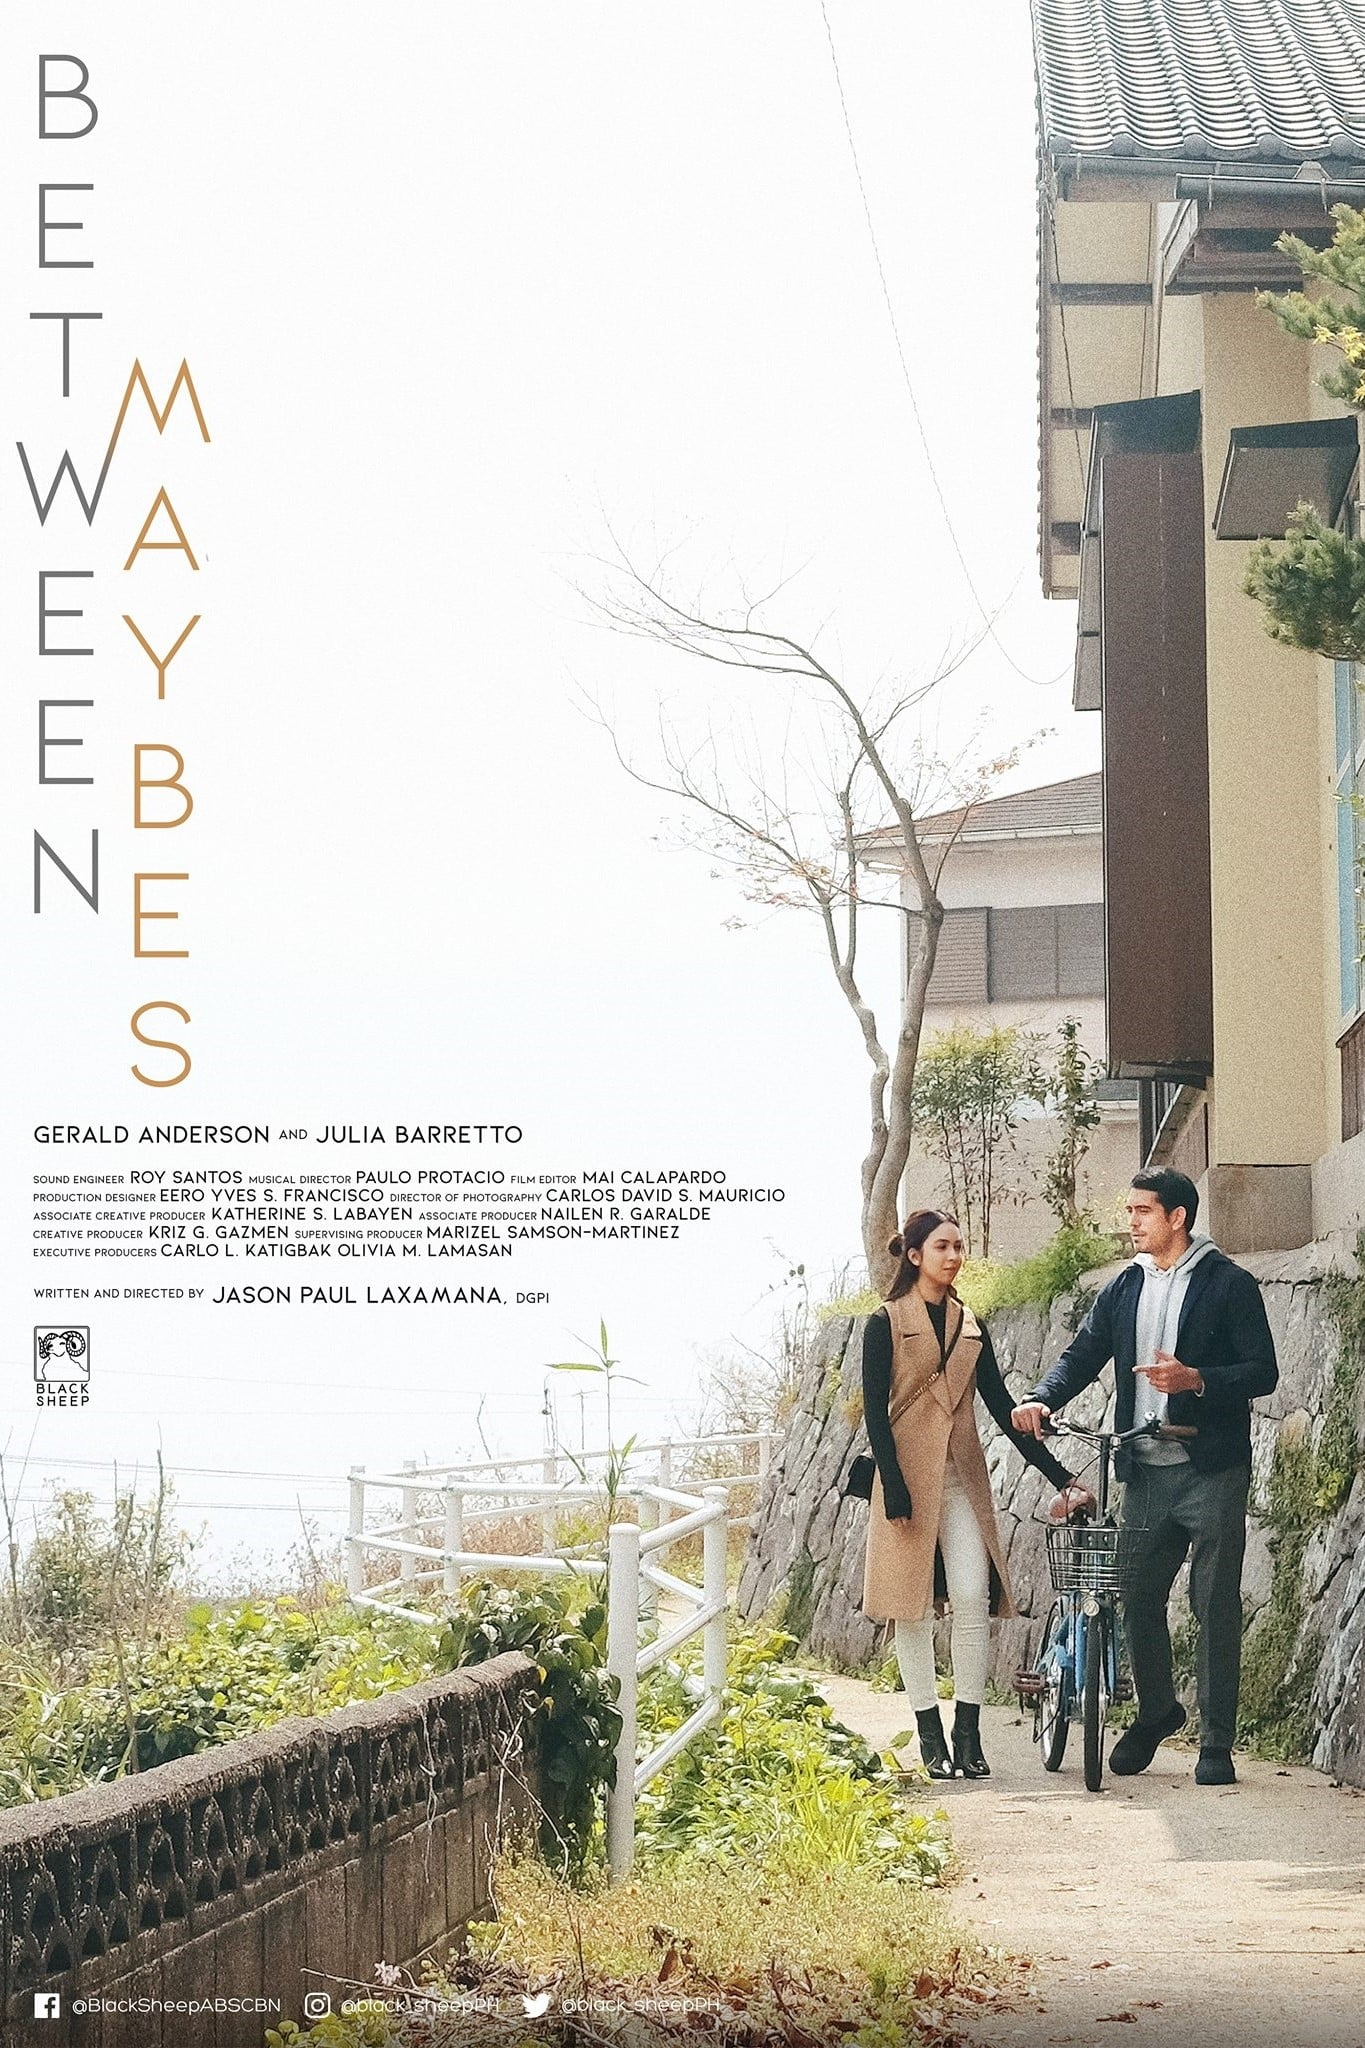 Between Maybes